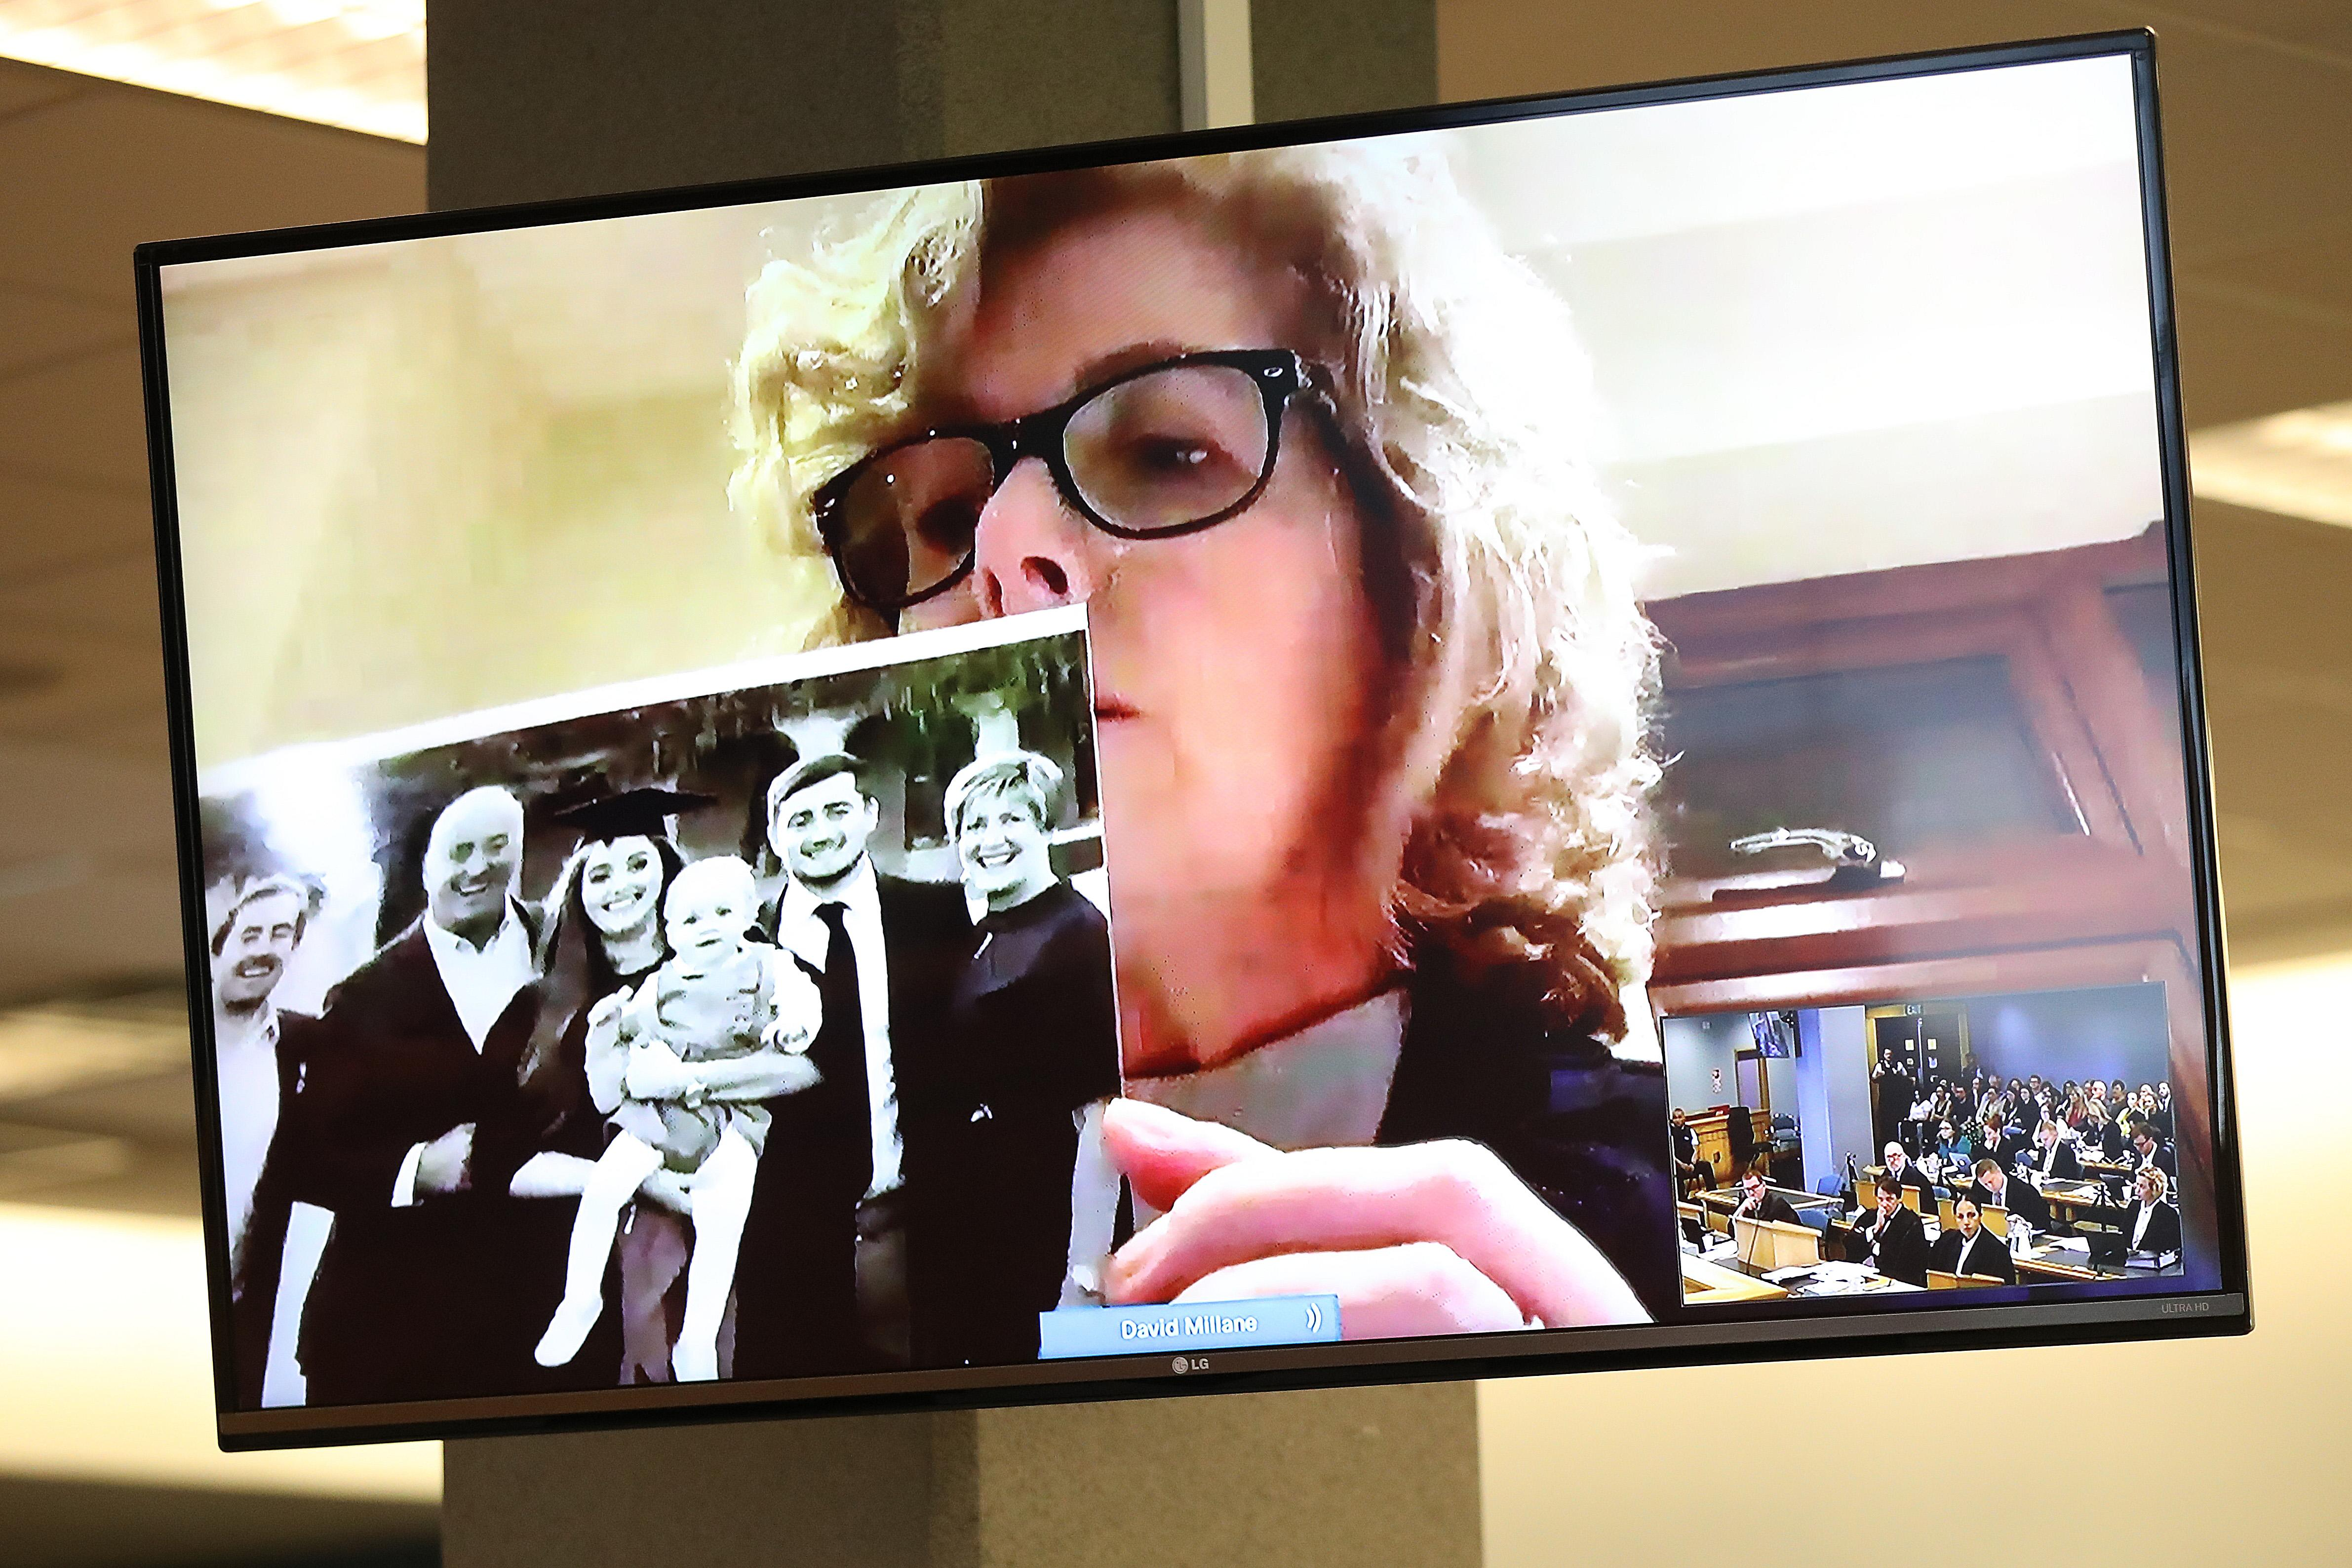 AUCKLAND, NEW ZEALAND - FEBRUARY 21: Gillian Millane holds a family photograph during her televised victim impact statement from her home in the UK on February 21, 2020 in Auckland, New Zealand. The 28-year-old man was found guilty of the murder of British backpacker Grace Millane, whose body was found in bush in West Auckland's Waitakere Ranges on 9 December 2018. Jurors at Auckland's High Court took about four hours to convict him in November 2019. A suppression order remains in place, prohibiting the publication of the accused's name or picture. (Photo by Greg Bowker/Getty Images)